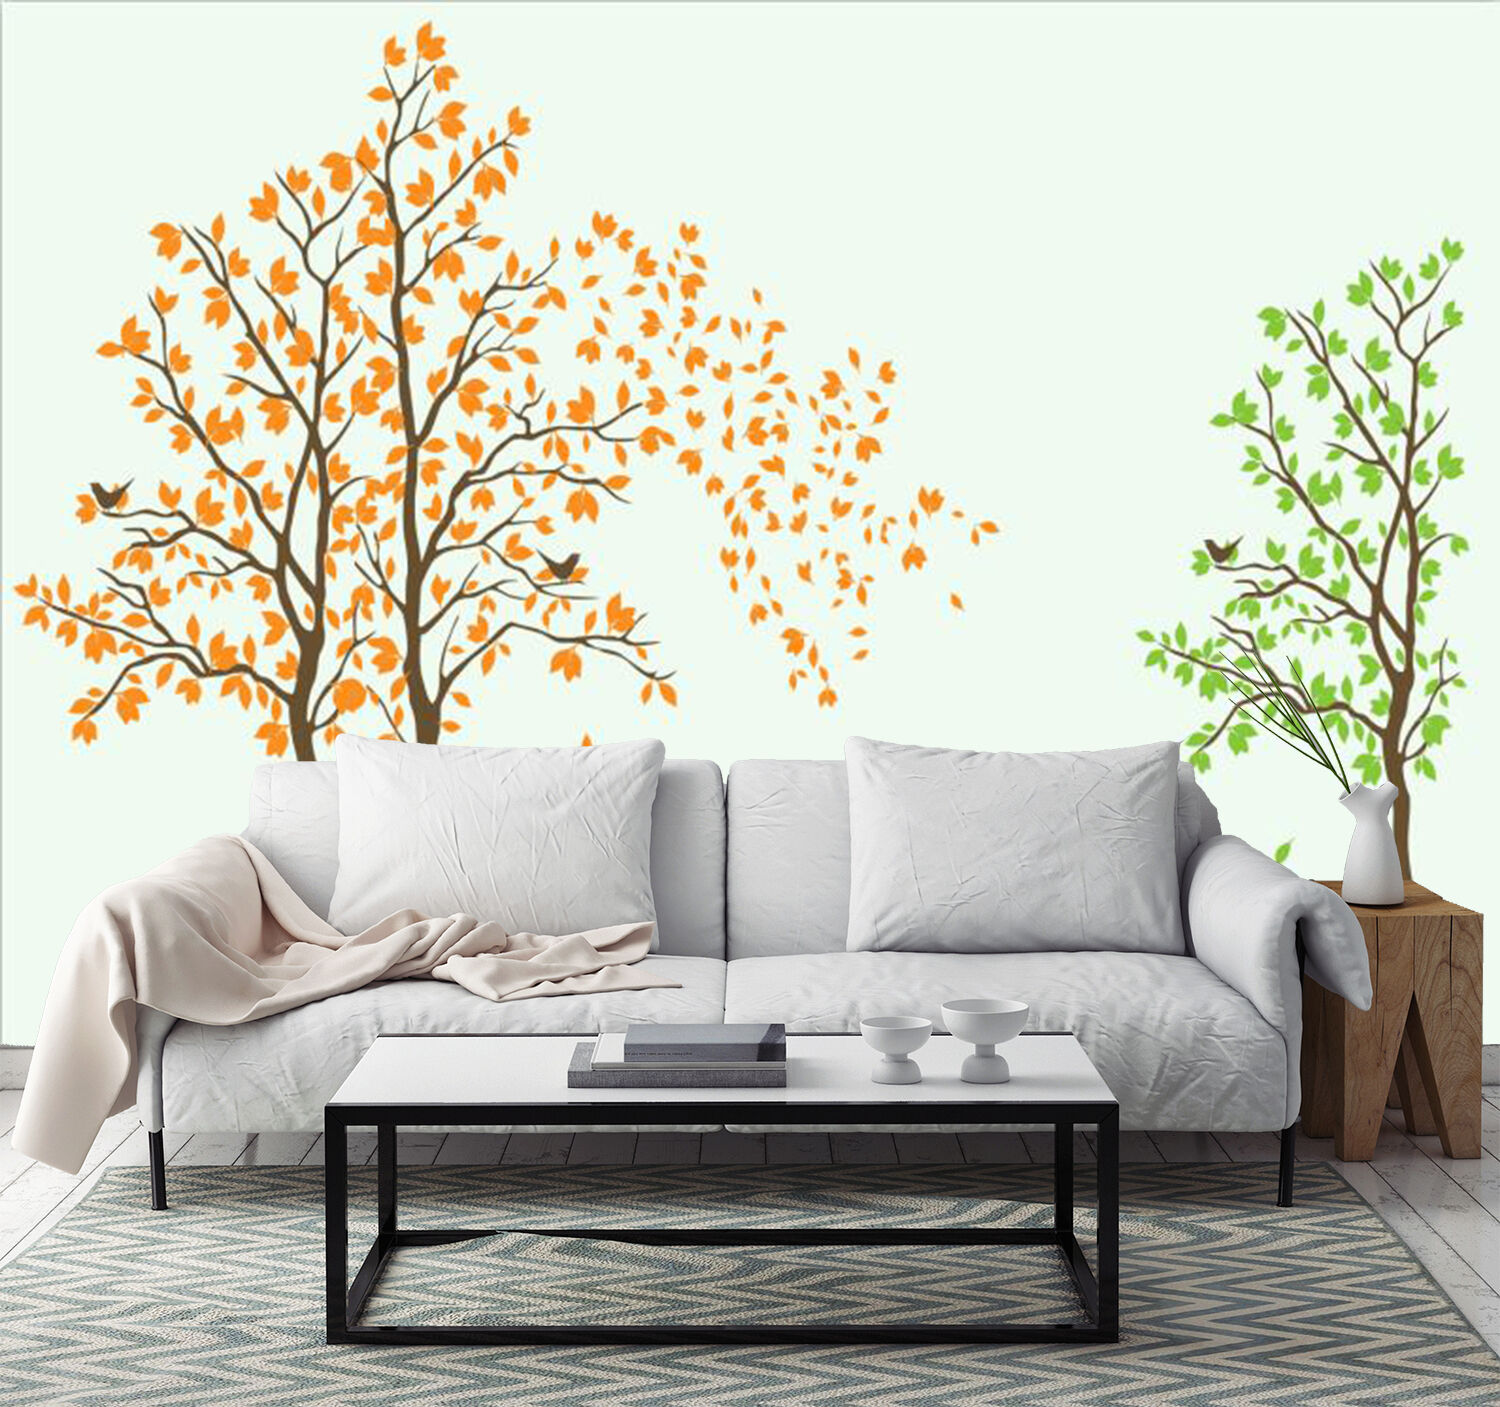 3D Farbeful Trees Pattern 1 Wall Paper Print Decal Wall Deco Indoor wall Mural